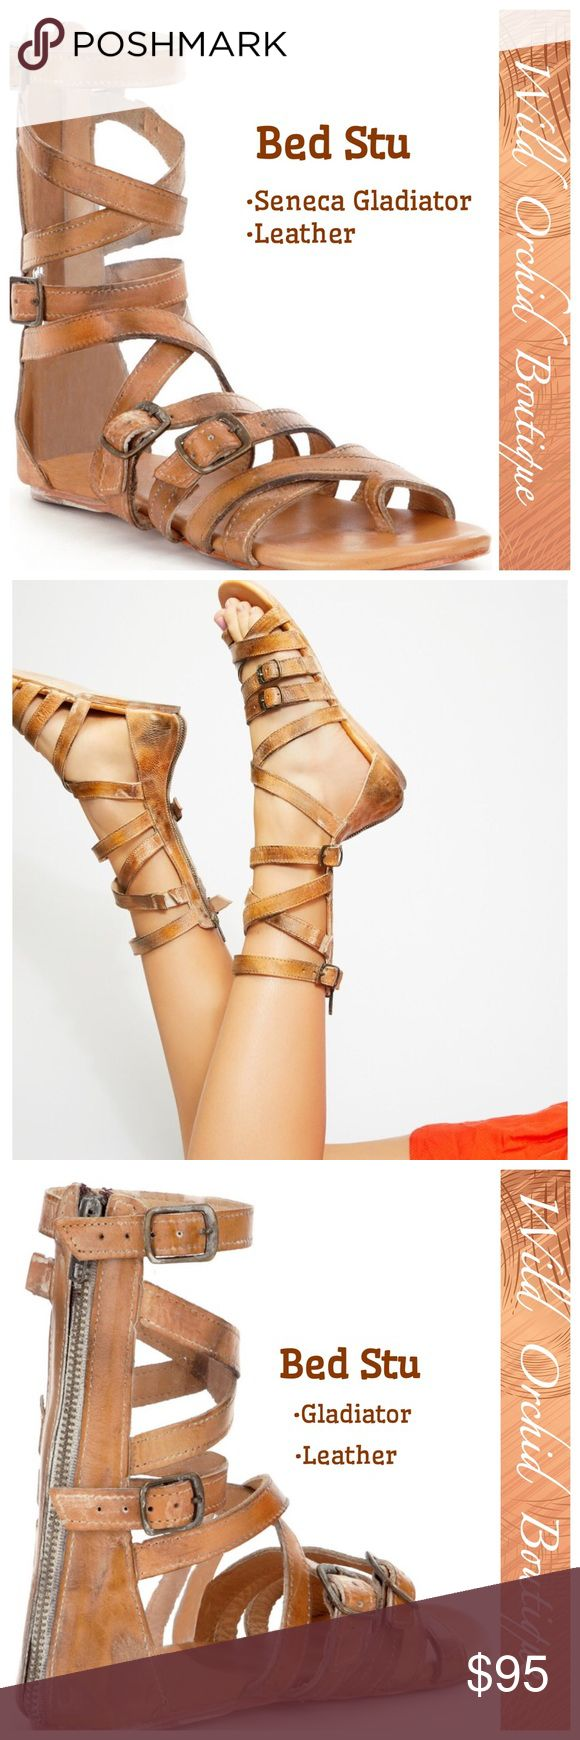 THE SENECA GLADIATOR By BED STU From Bed Stu, the Seneca women's gladiator sandals feature: •leather upper •back zipper closure •leather lining •leather sole.   •EUC Only worn couple times. Bed Stu Shoes Sandals